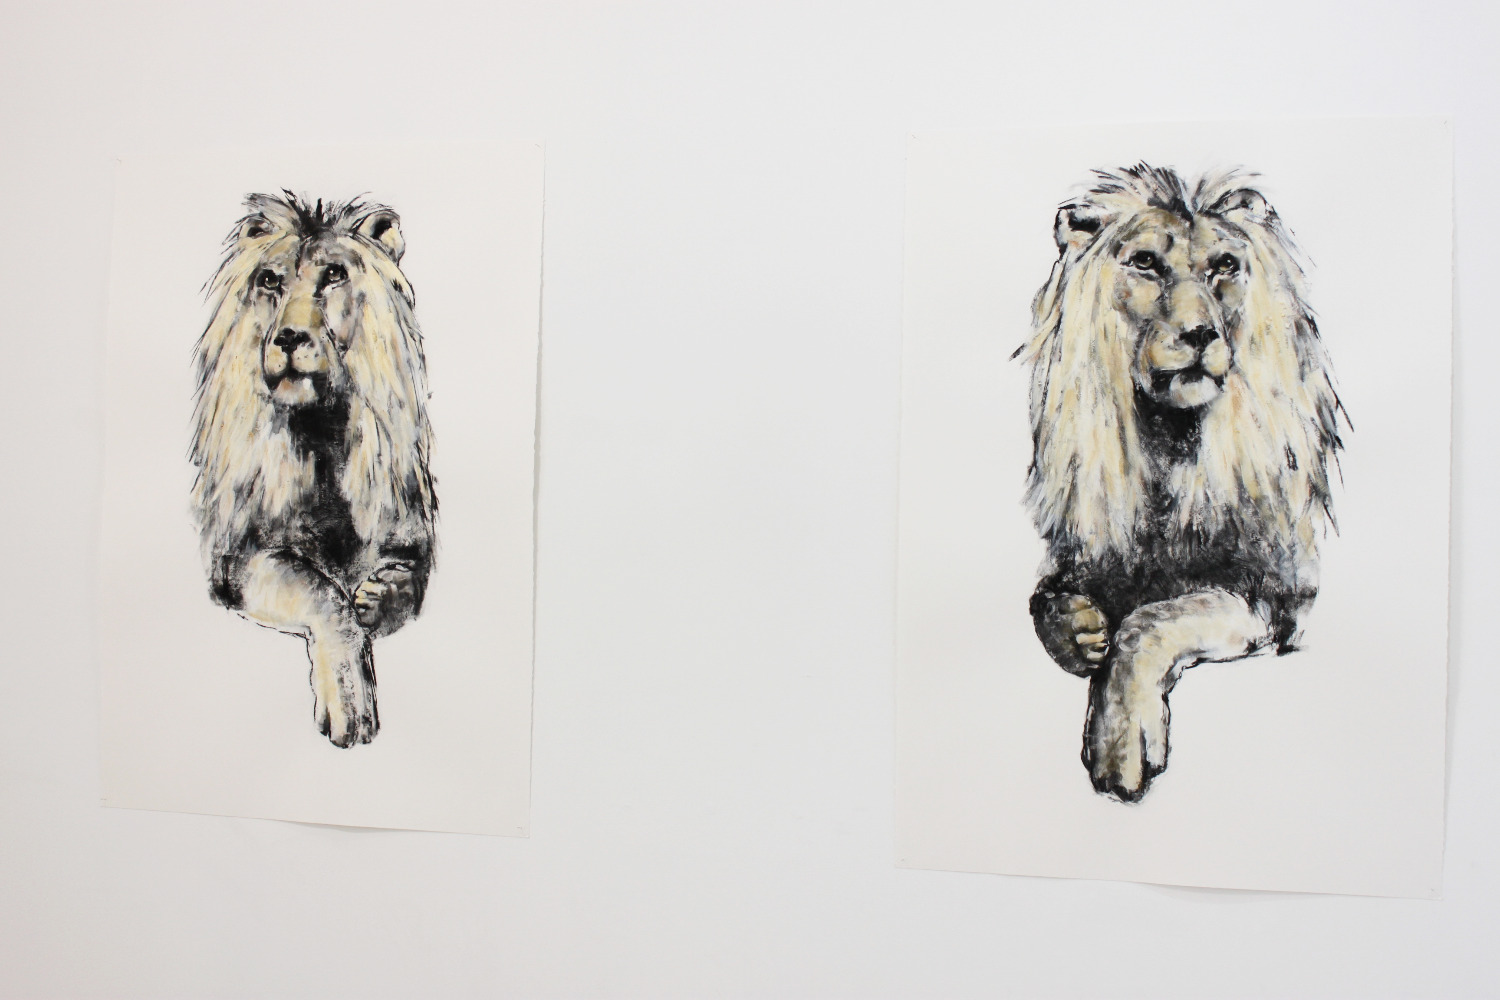 two free lions